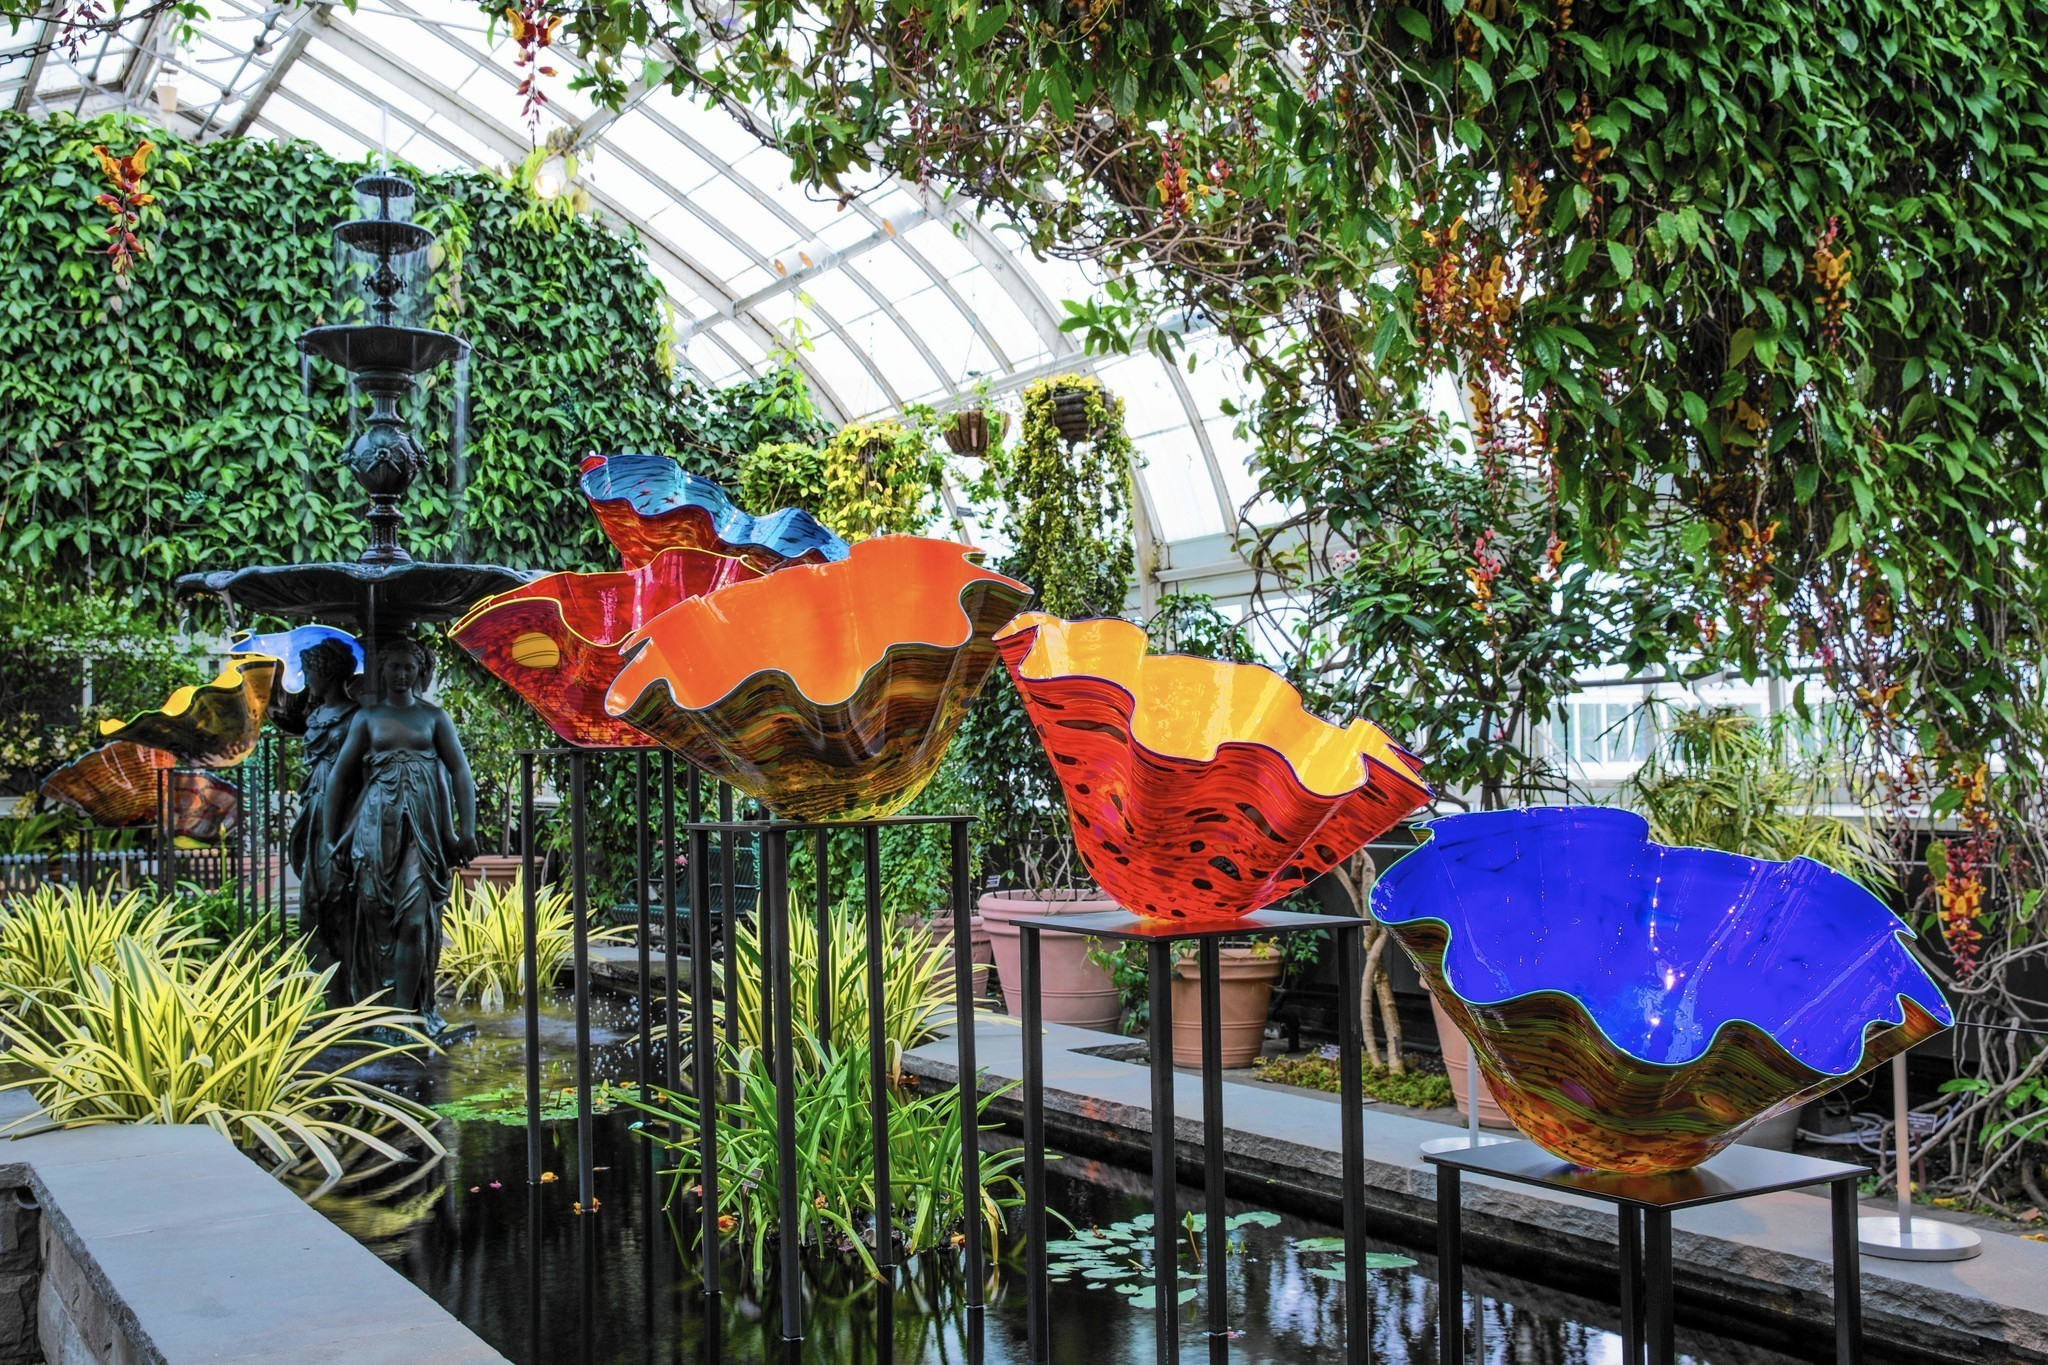 Dale Chihuly,  Macchia Forest ( 2017)  Image via  Chicago Tribune